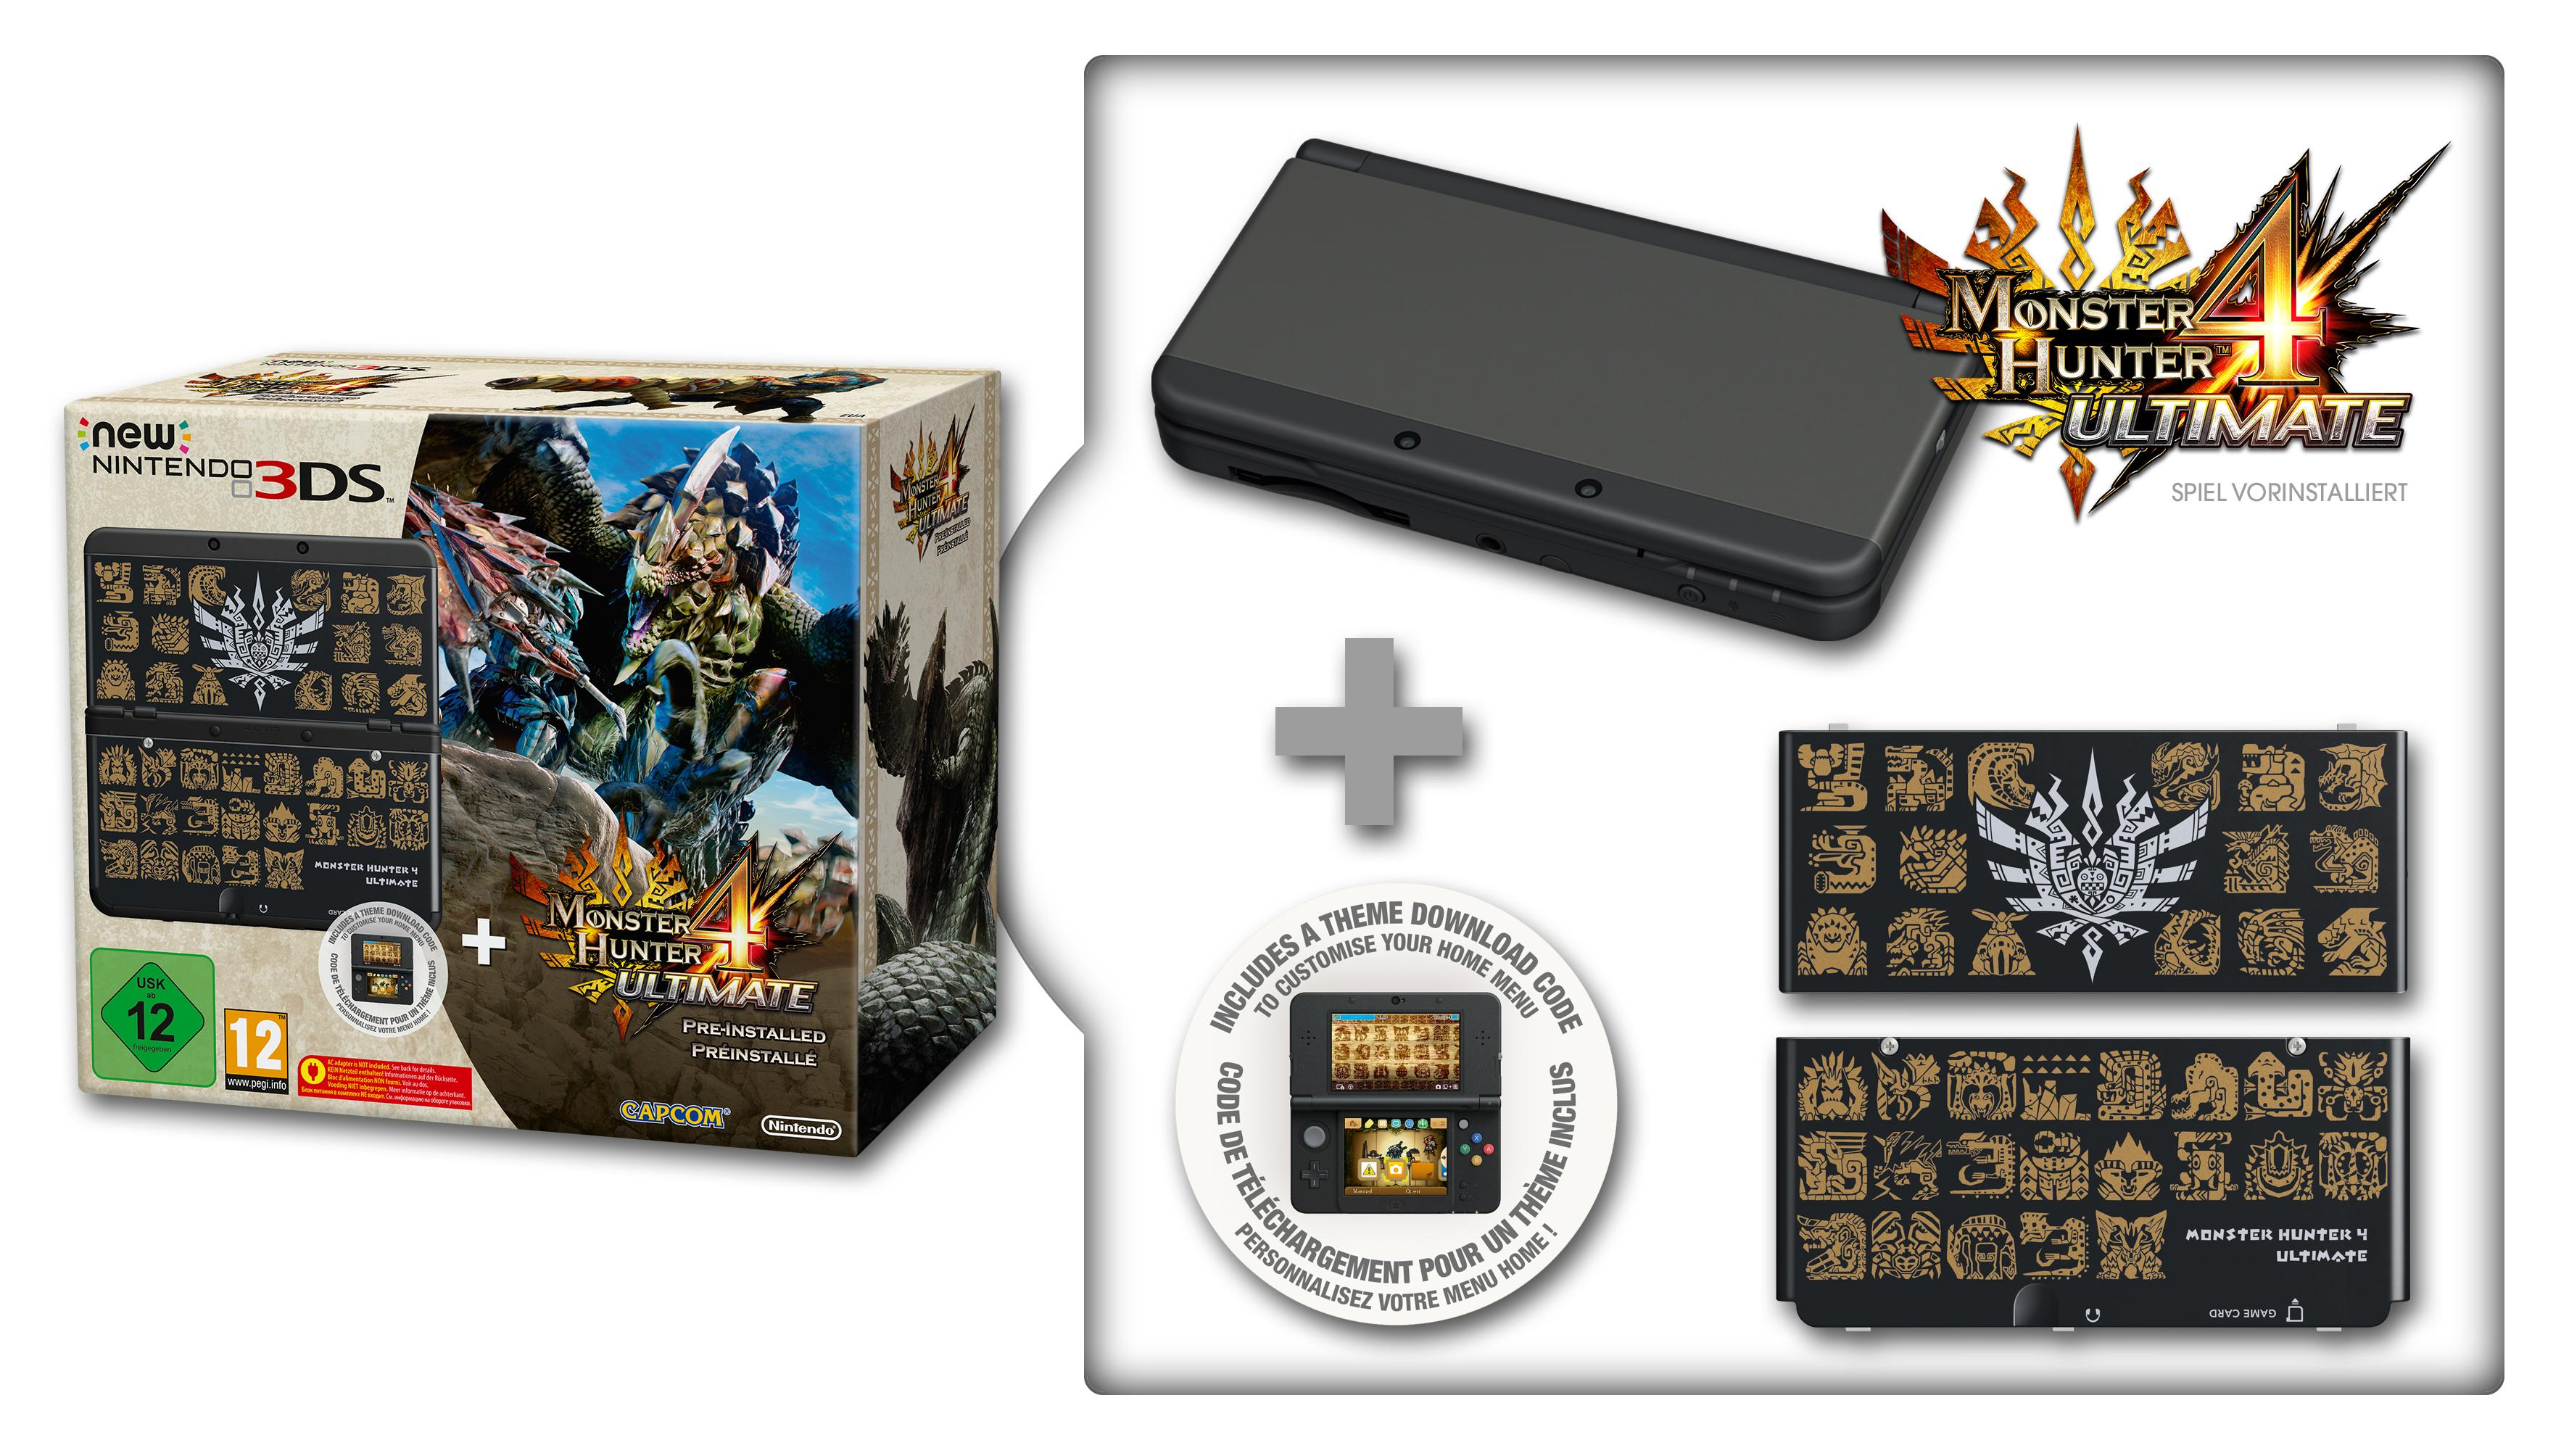 New Nintendo 3DS schwarz inkl. Monster Hunter 4 Ultimate + ...